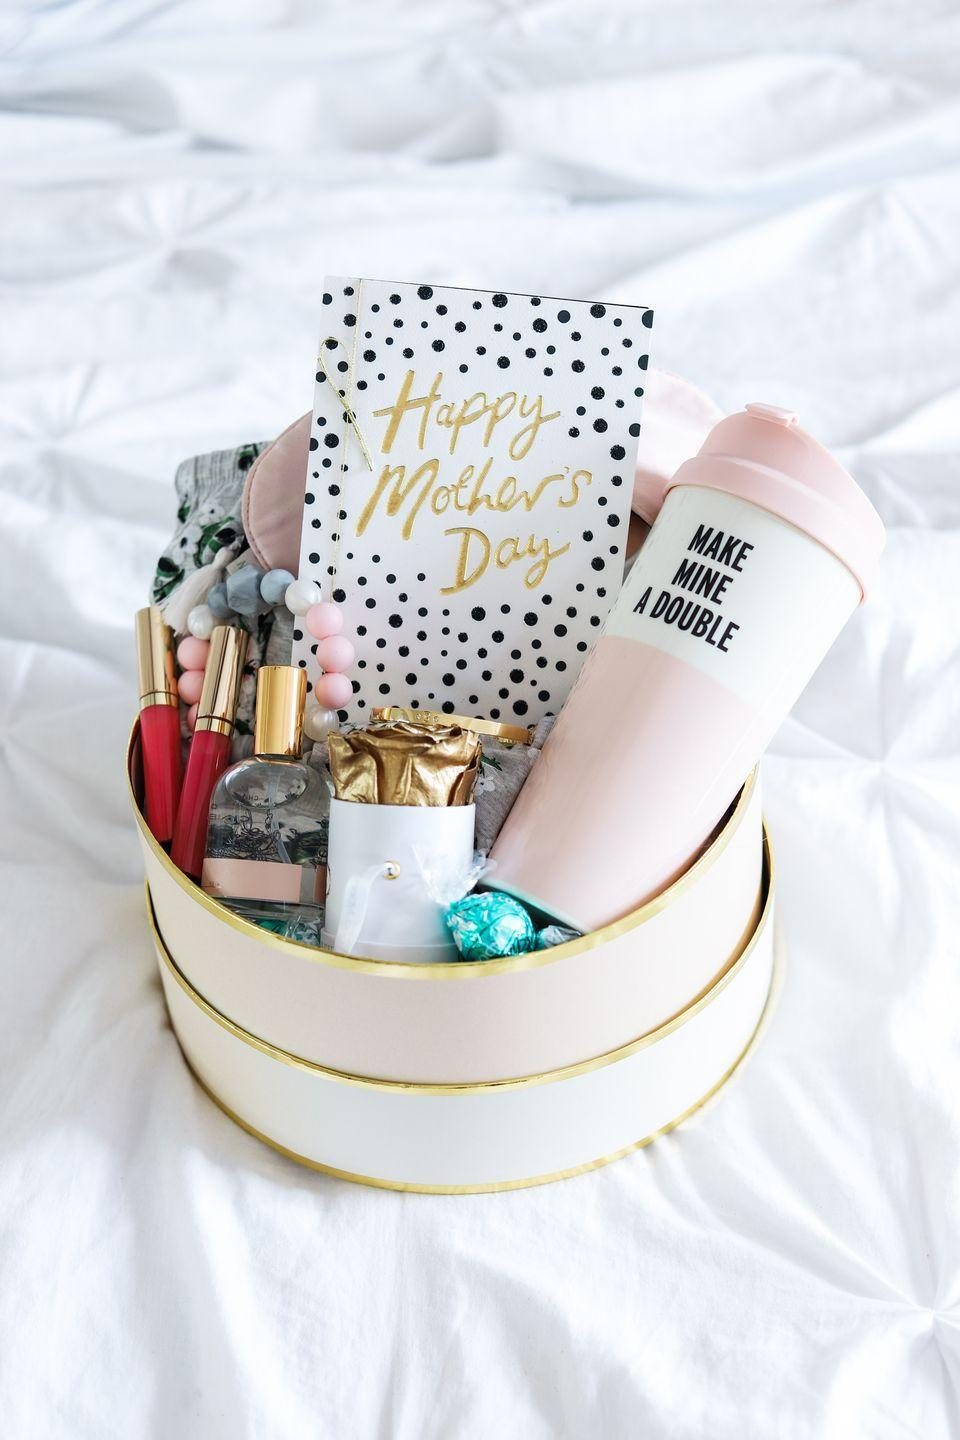 "<p>If it's a first Mother's Day (or even, if she's a mom-to-be), fill a box with everything she needs to unwind, recharge, and well, stay sane. </p><p><em><a href=""https://www.ashleybrookenicholas.com/2018/04/new-mom-survival-kit-mothers-day-gift-idea.html"" rel=""nofollow noopener"" target=""_blank"" data-ylk=""slk:Get the tutorial at Ashley Brooke Nicholas »"" class=""link rapid-noclick-resp"">Get the tutorial at Ashley Brooke Nicholas »</a></em> </p><p><strong>RELATED:</strong> <a href=""https://www.goodhousekeeping.com/holidays/mothers-day/g4302/first-mothers-day-gifts-for-new-moms/"" rel=""nofollow noopener"" target=""_blank"" data-ylk=""slk:The Best First Mother's Day Gifts"" class=""link rapid-noclick-resp"">The Best First Mother's Day Gifts </a></p>"